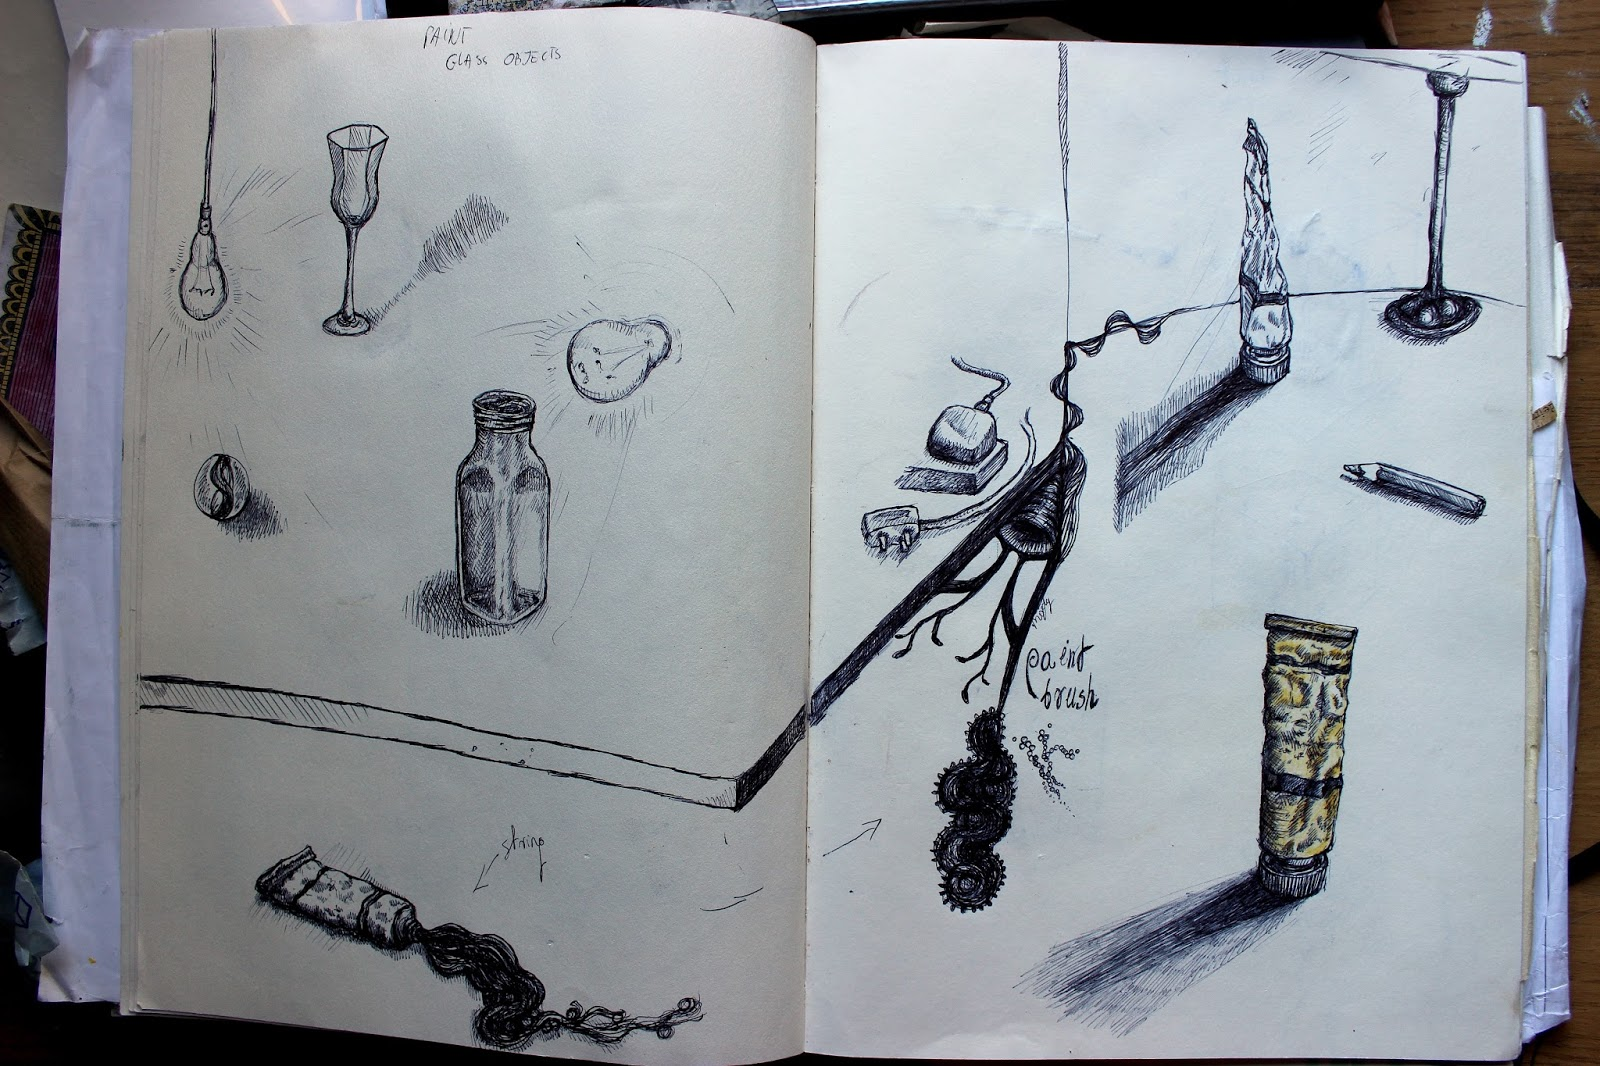 Drawing Sketch Illustration Pencil Sketchpad Notebook Ink Still Life Paint Tubes